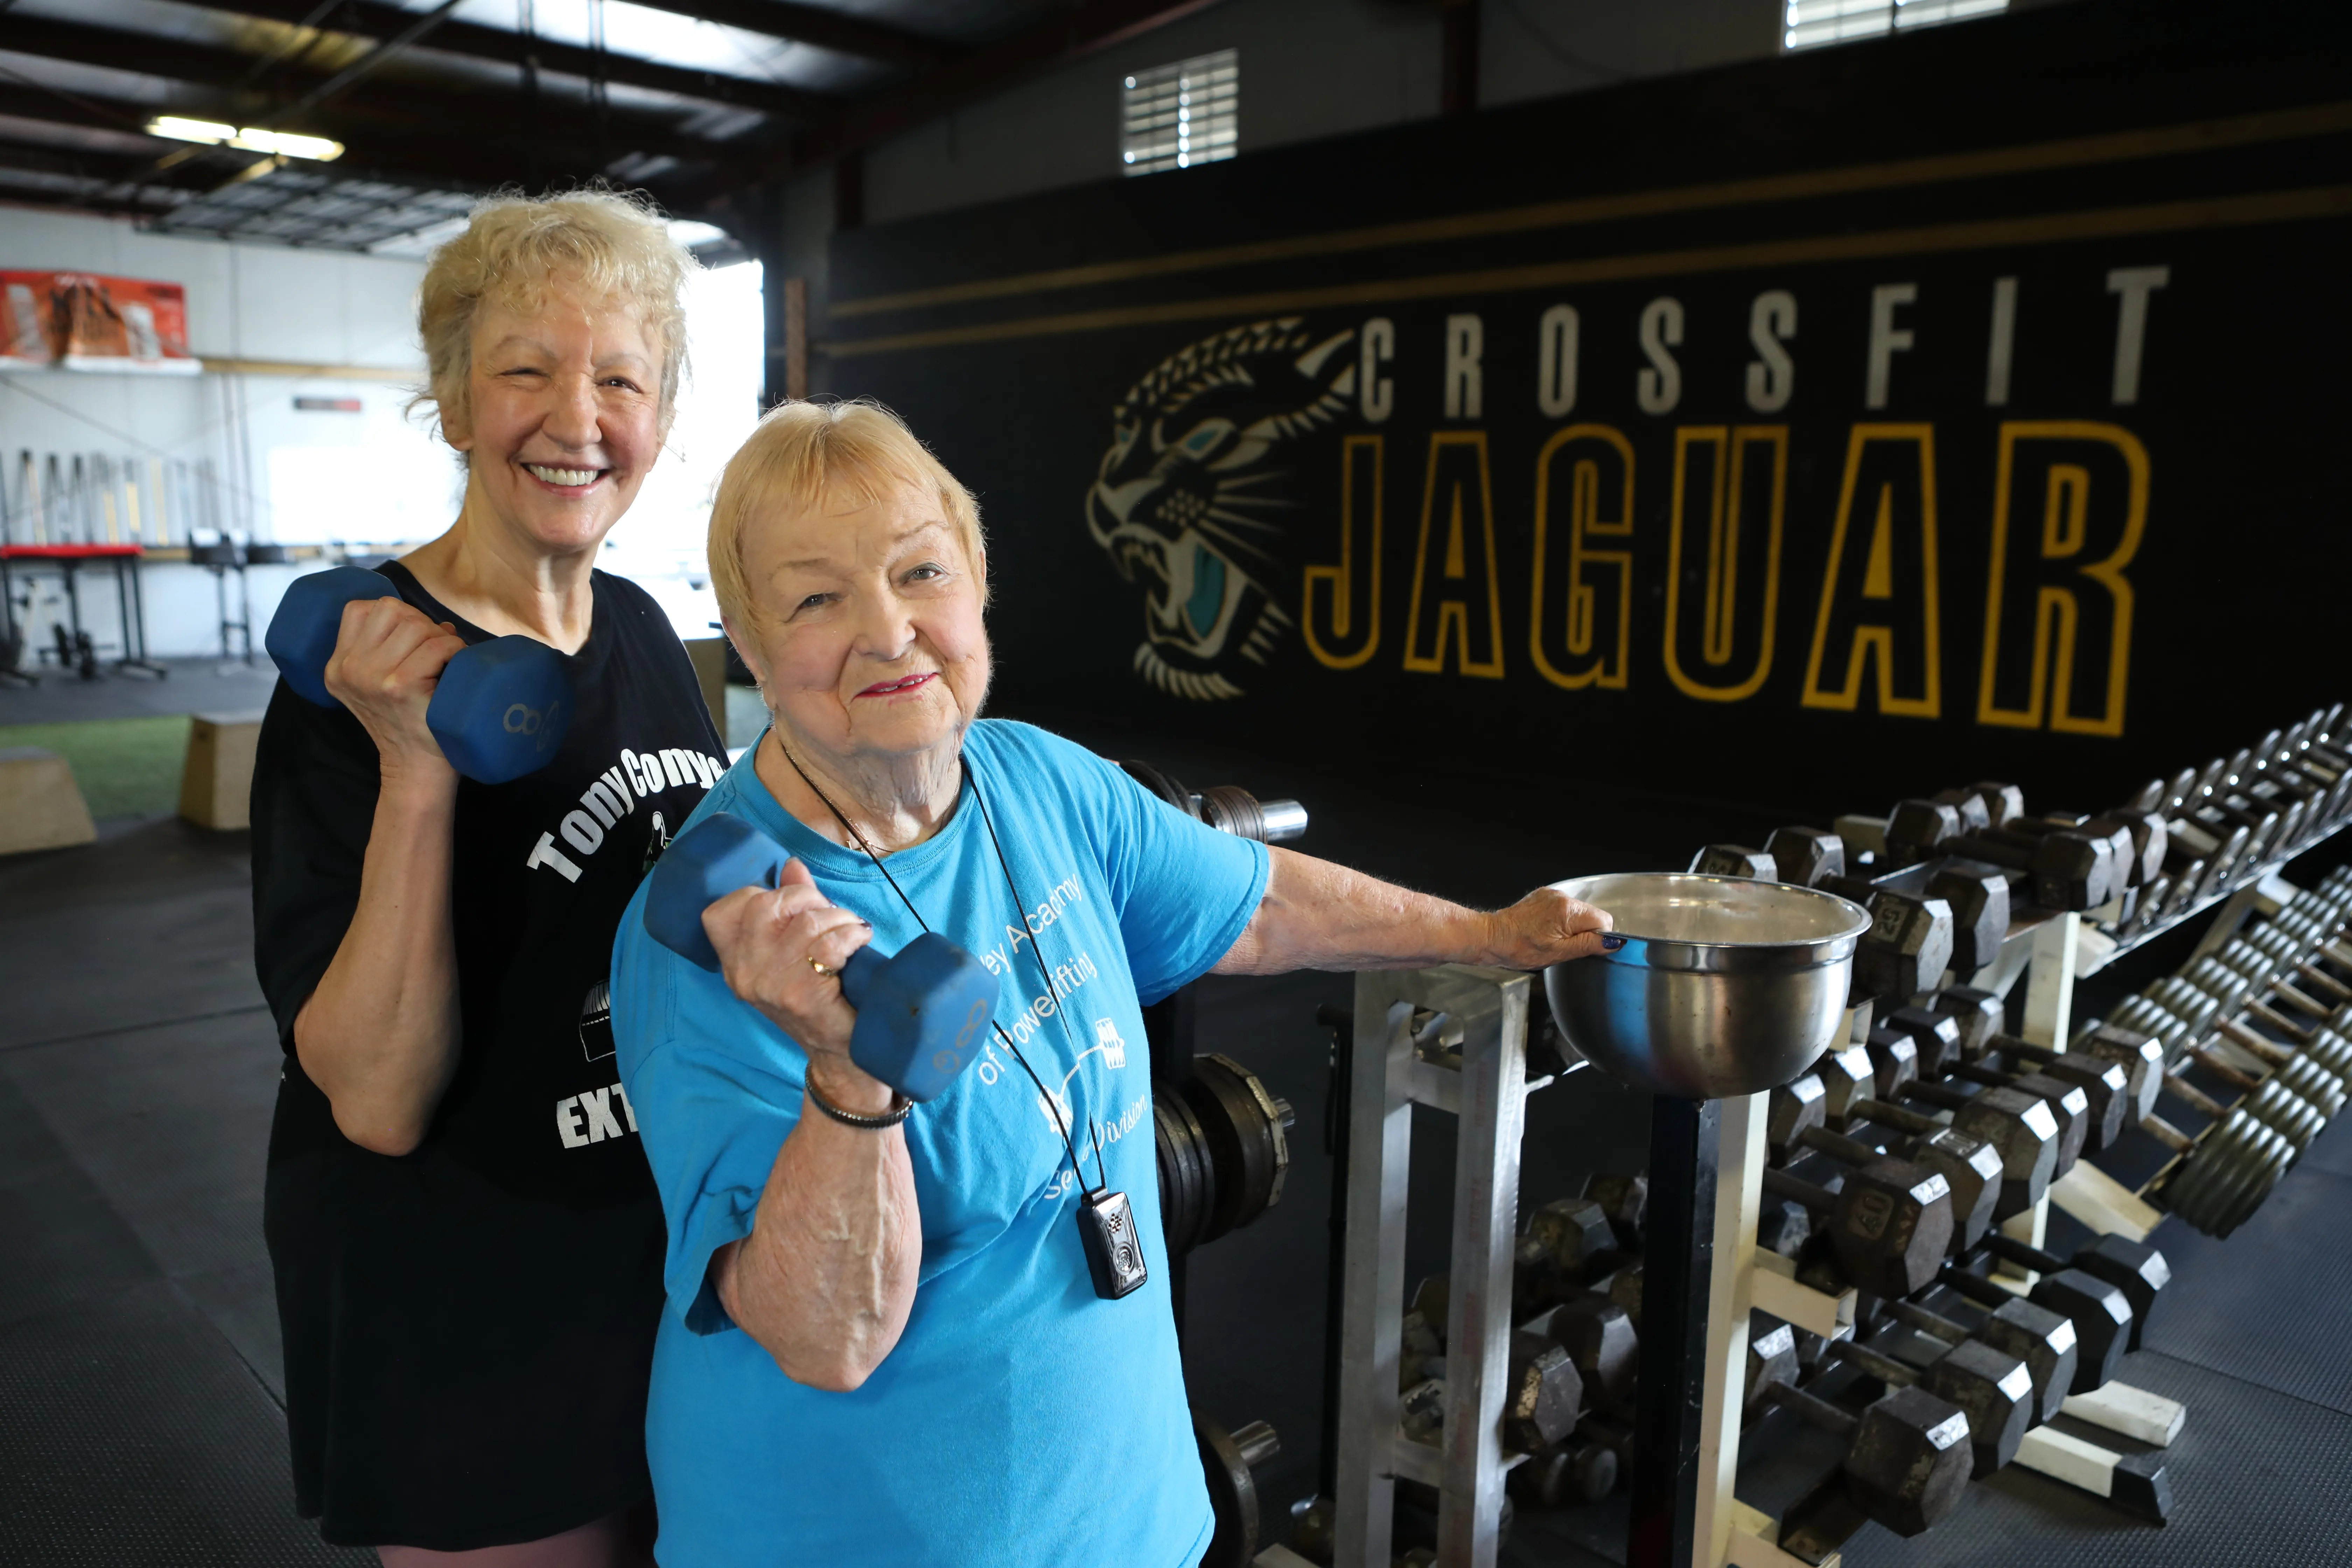 Edith Murway-Traina, 100, shown here with her friend Carmen Gutwirth (left) will feature in the upcoming Guinness World Records 2022 after winning the title of oldest competitive powerlifter (female).